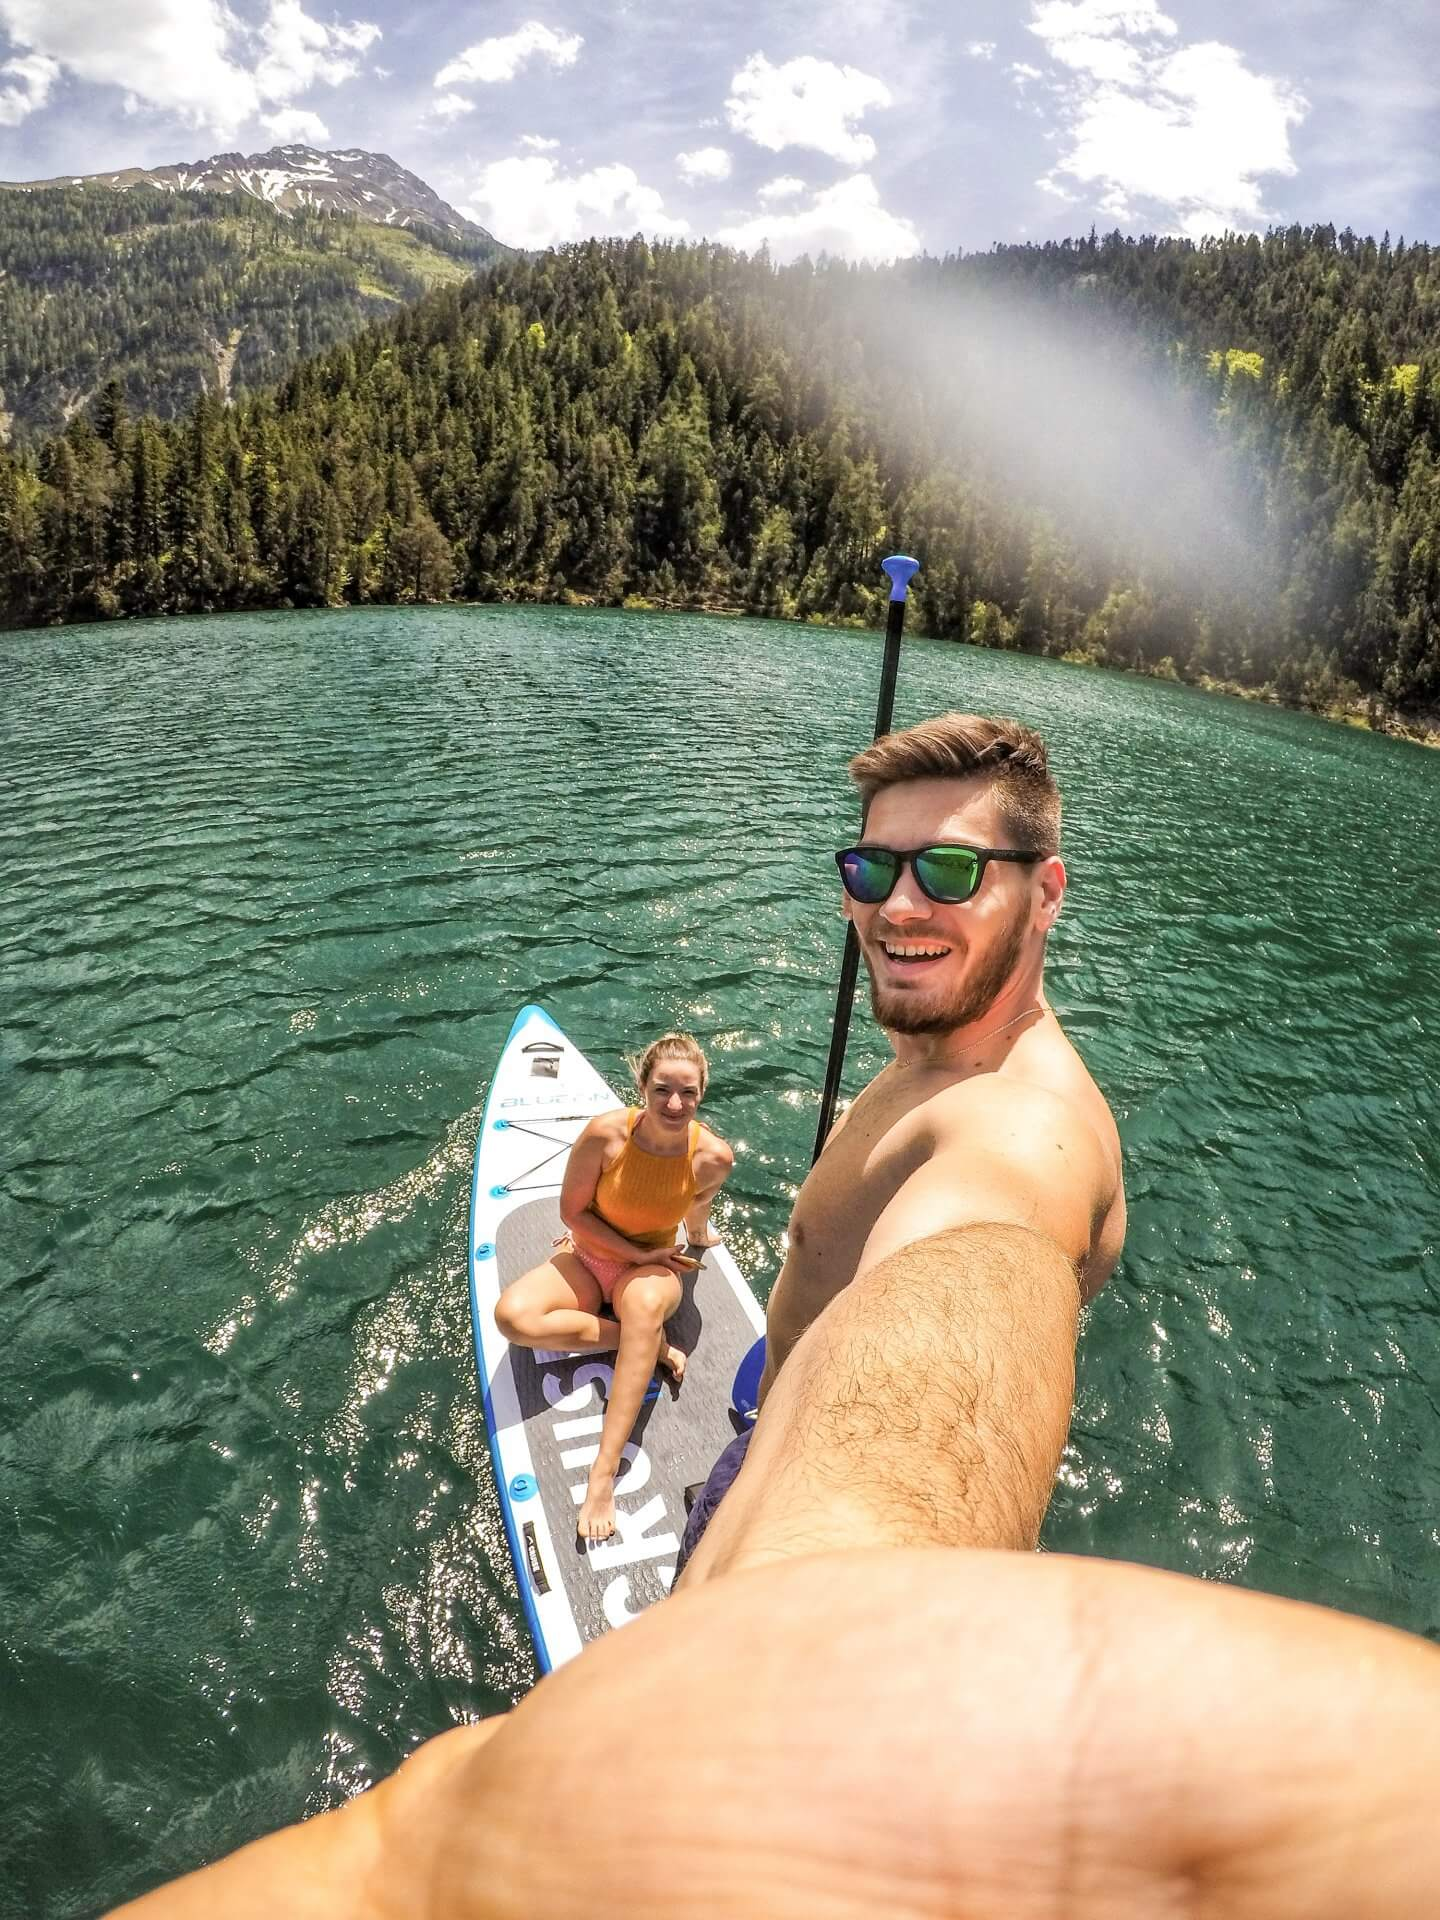 SUP: Unsere Top 3 Stand Up Paddle Spots